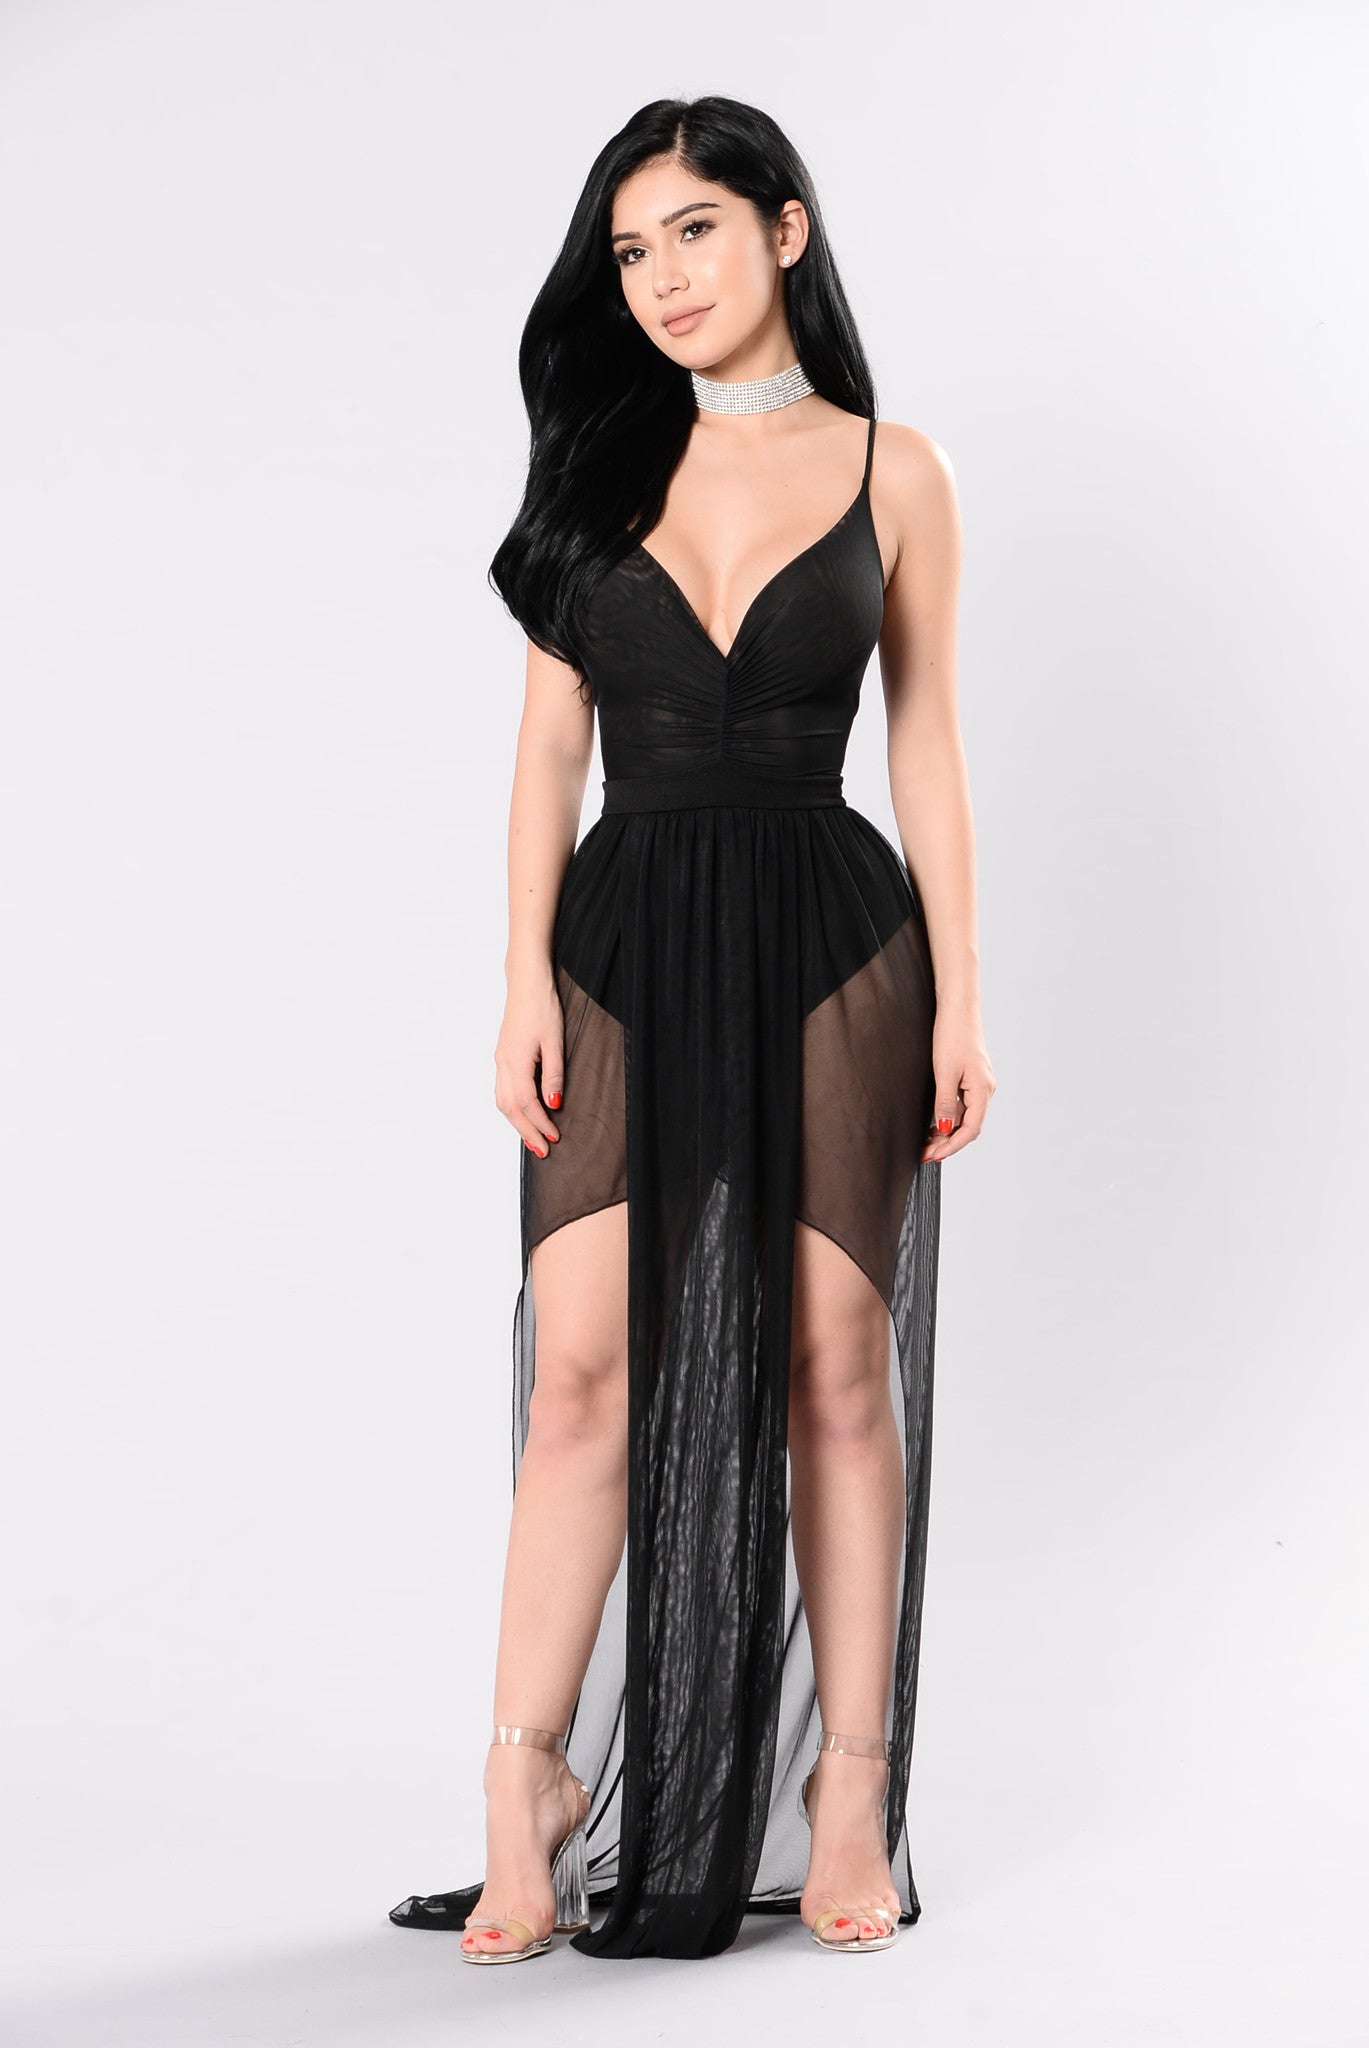 Dress up 247 login - Taking Risks Dress Black